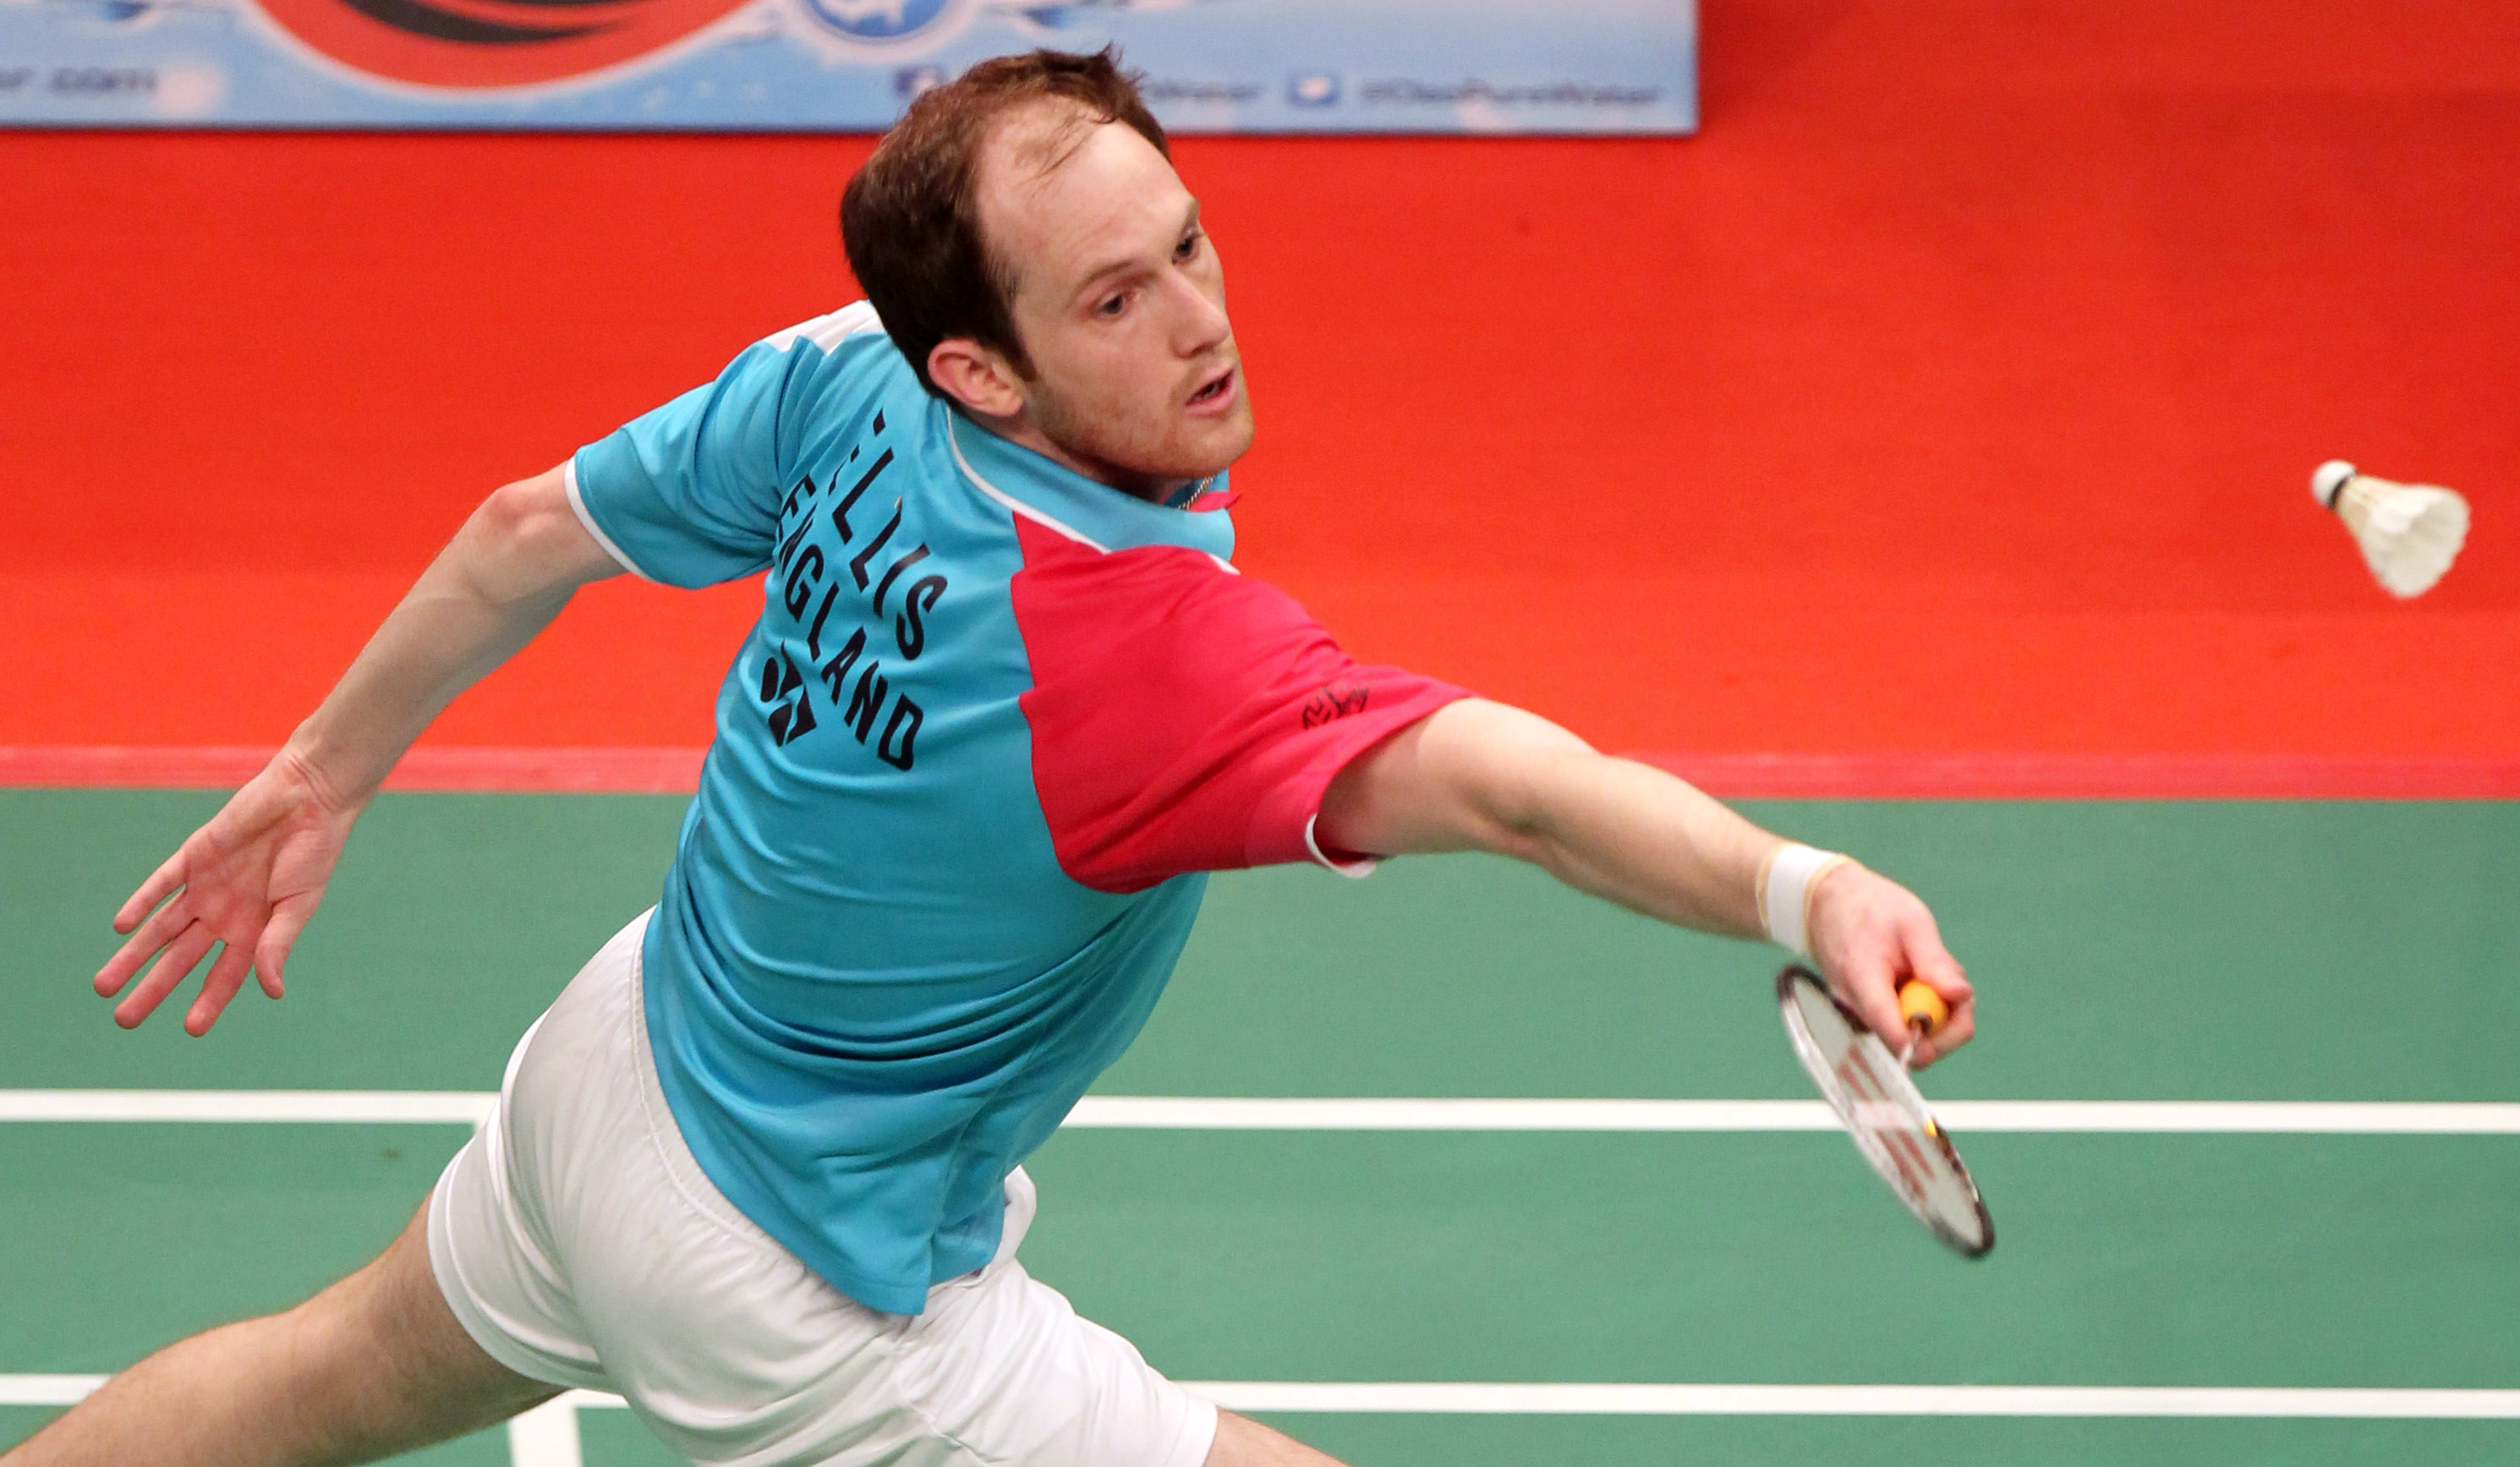 Andy Ellis blog: Amazing fan support at the Indonesia Open